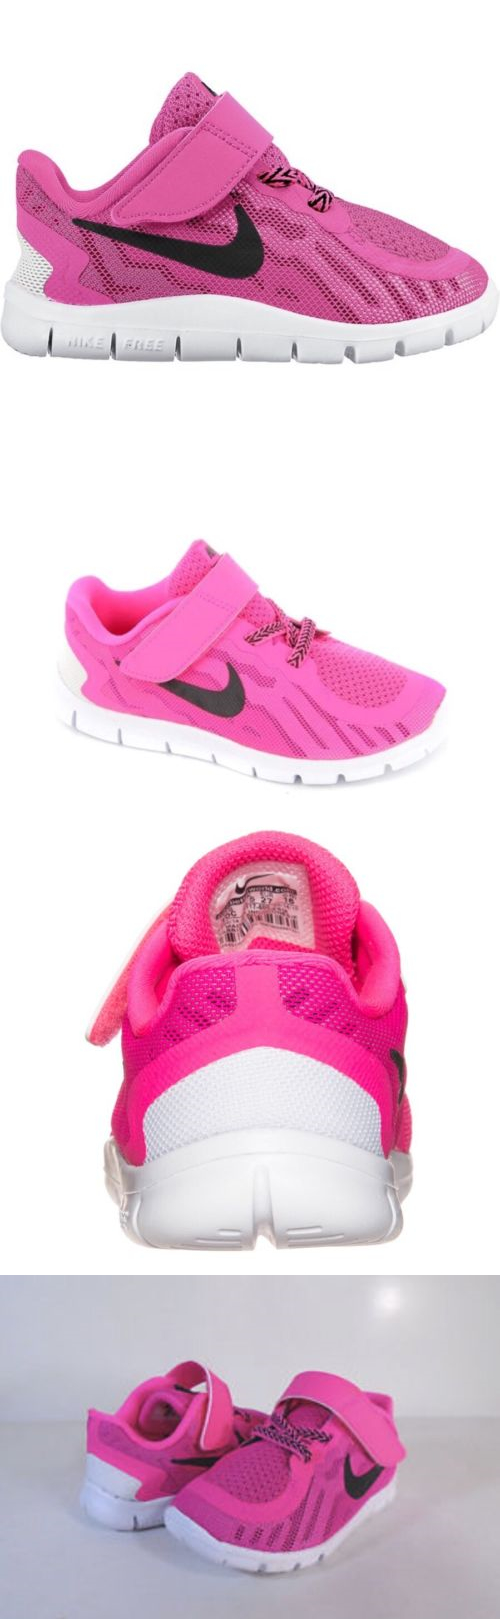 Baby Shoes 147285: Nike Free 5 (Tdv) Running Shoes 725117 600 Toddler Vivid